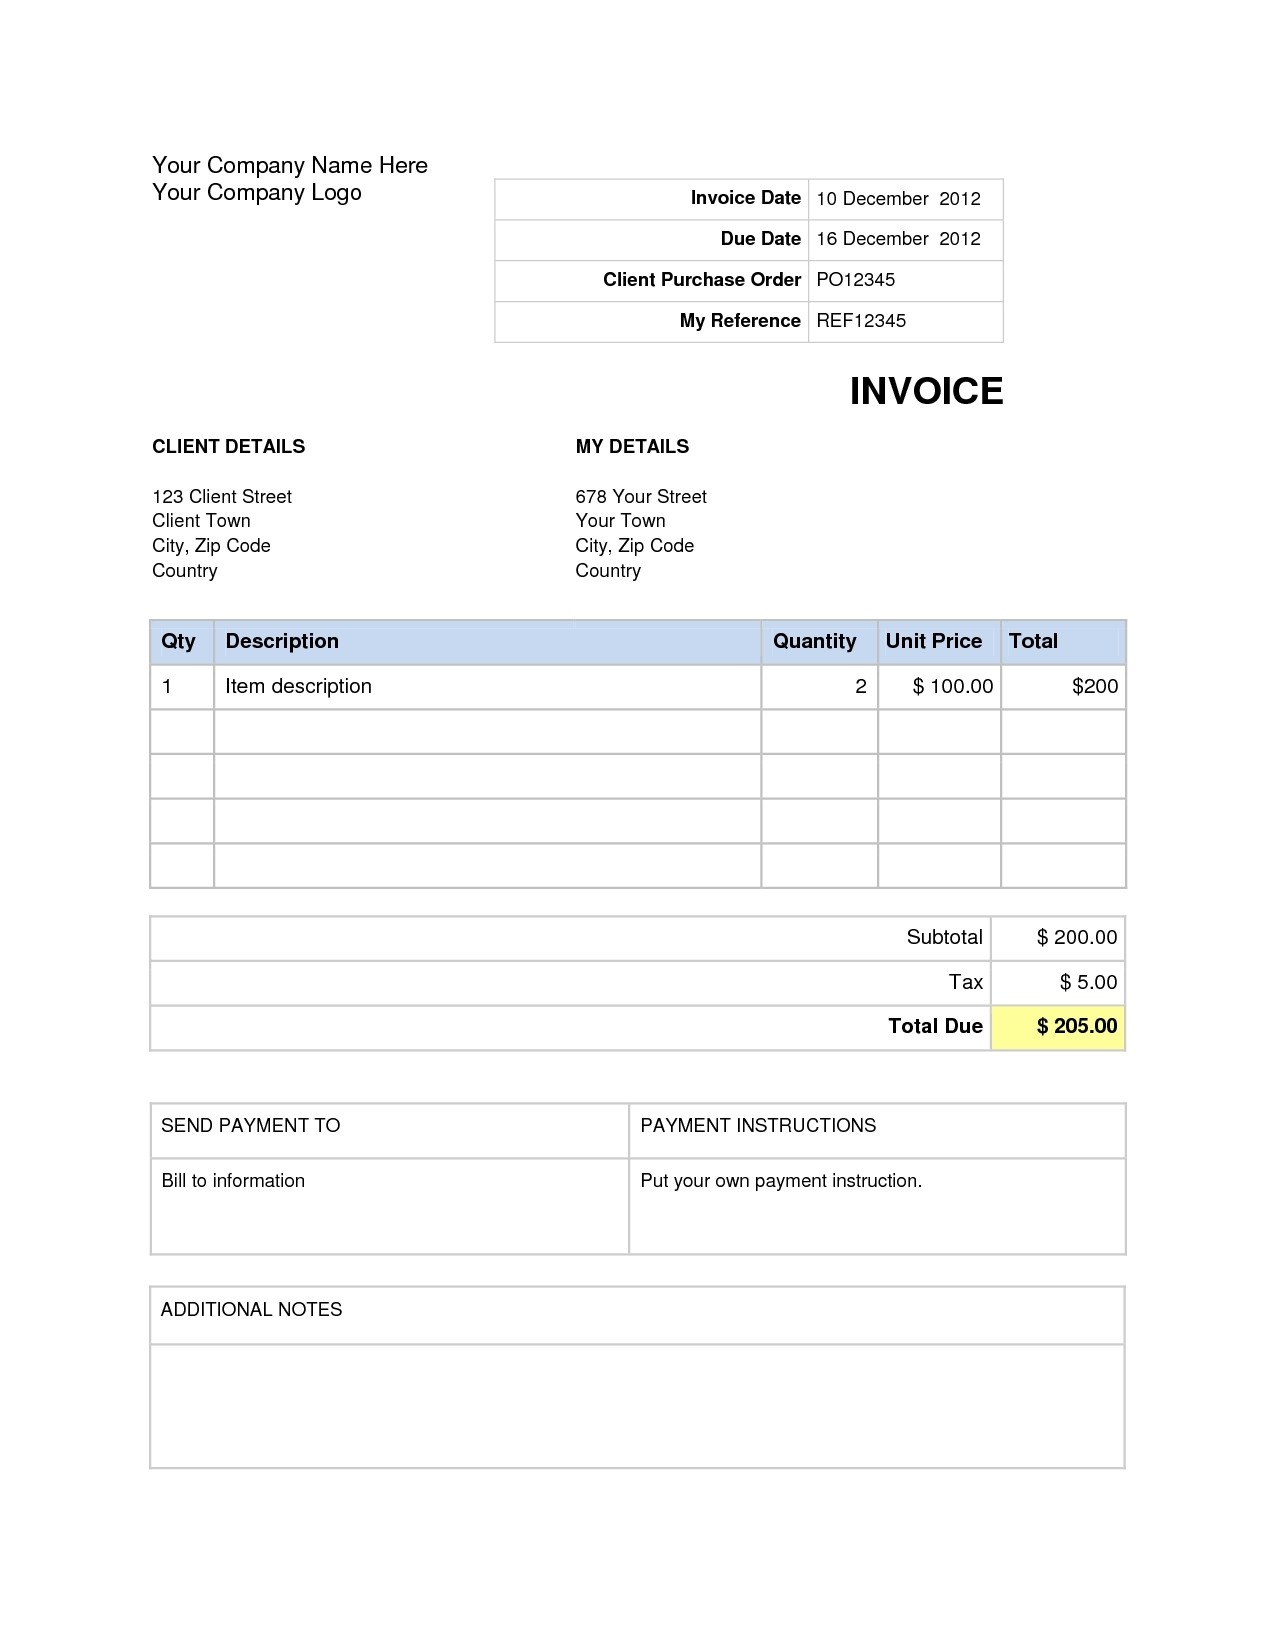 invoice template microsoft word 2007 invoice template free 2016 create an invoice in microsoft word